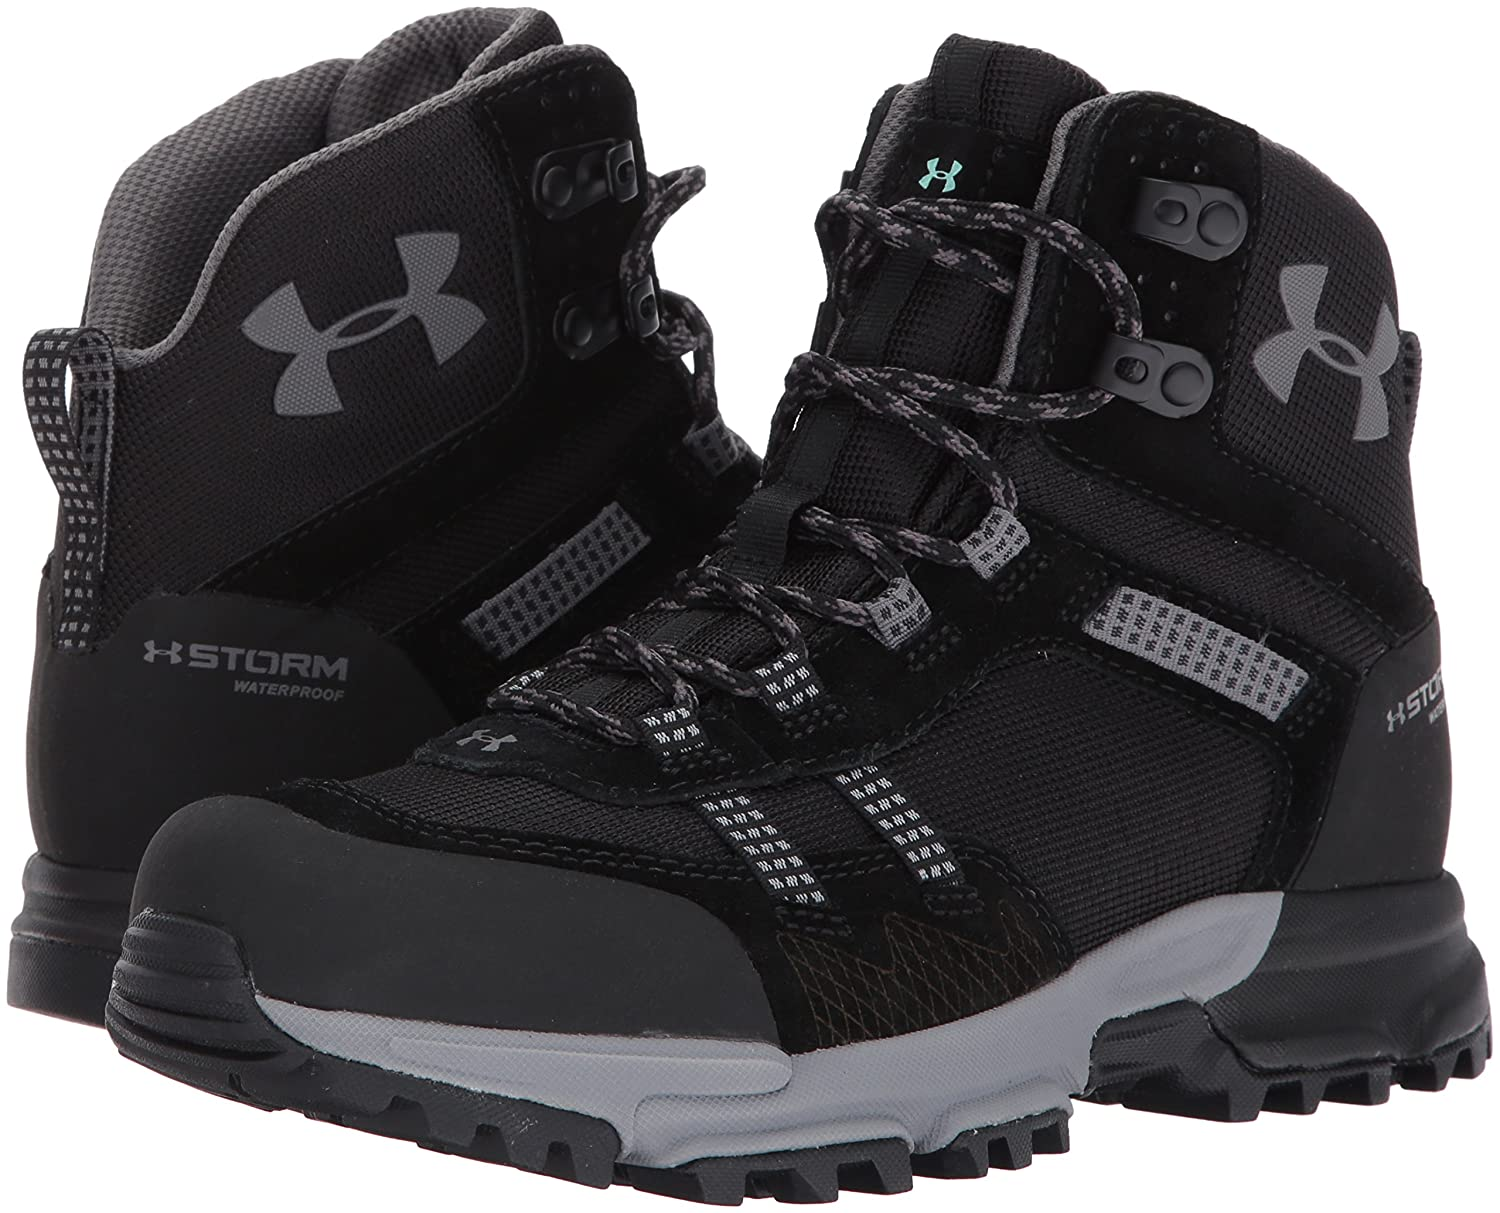 Under Mid Armour Women's Post Canyon Mid Under Waterproof Hiking Boot B01MRZLWGI 7.5 M US|Black (001)/Black 1be881